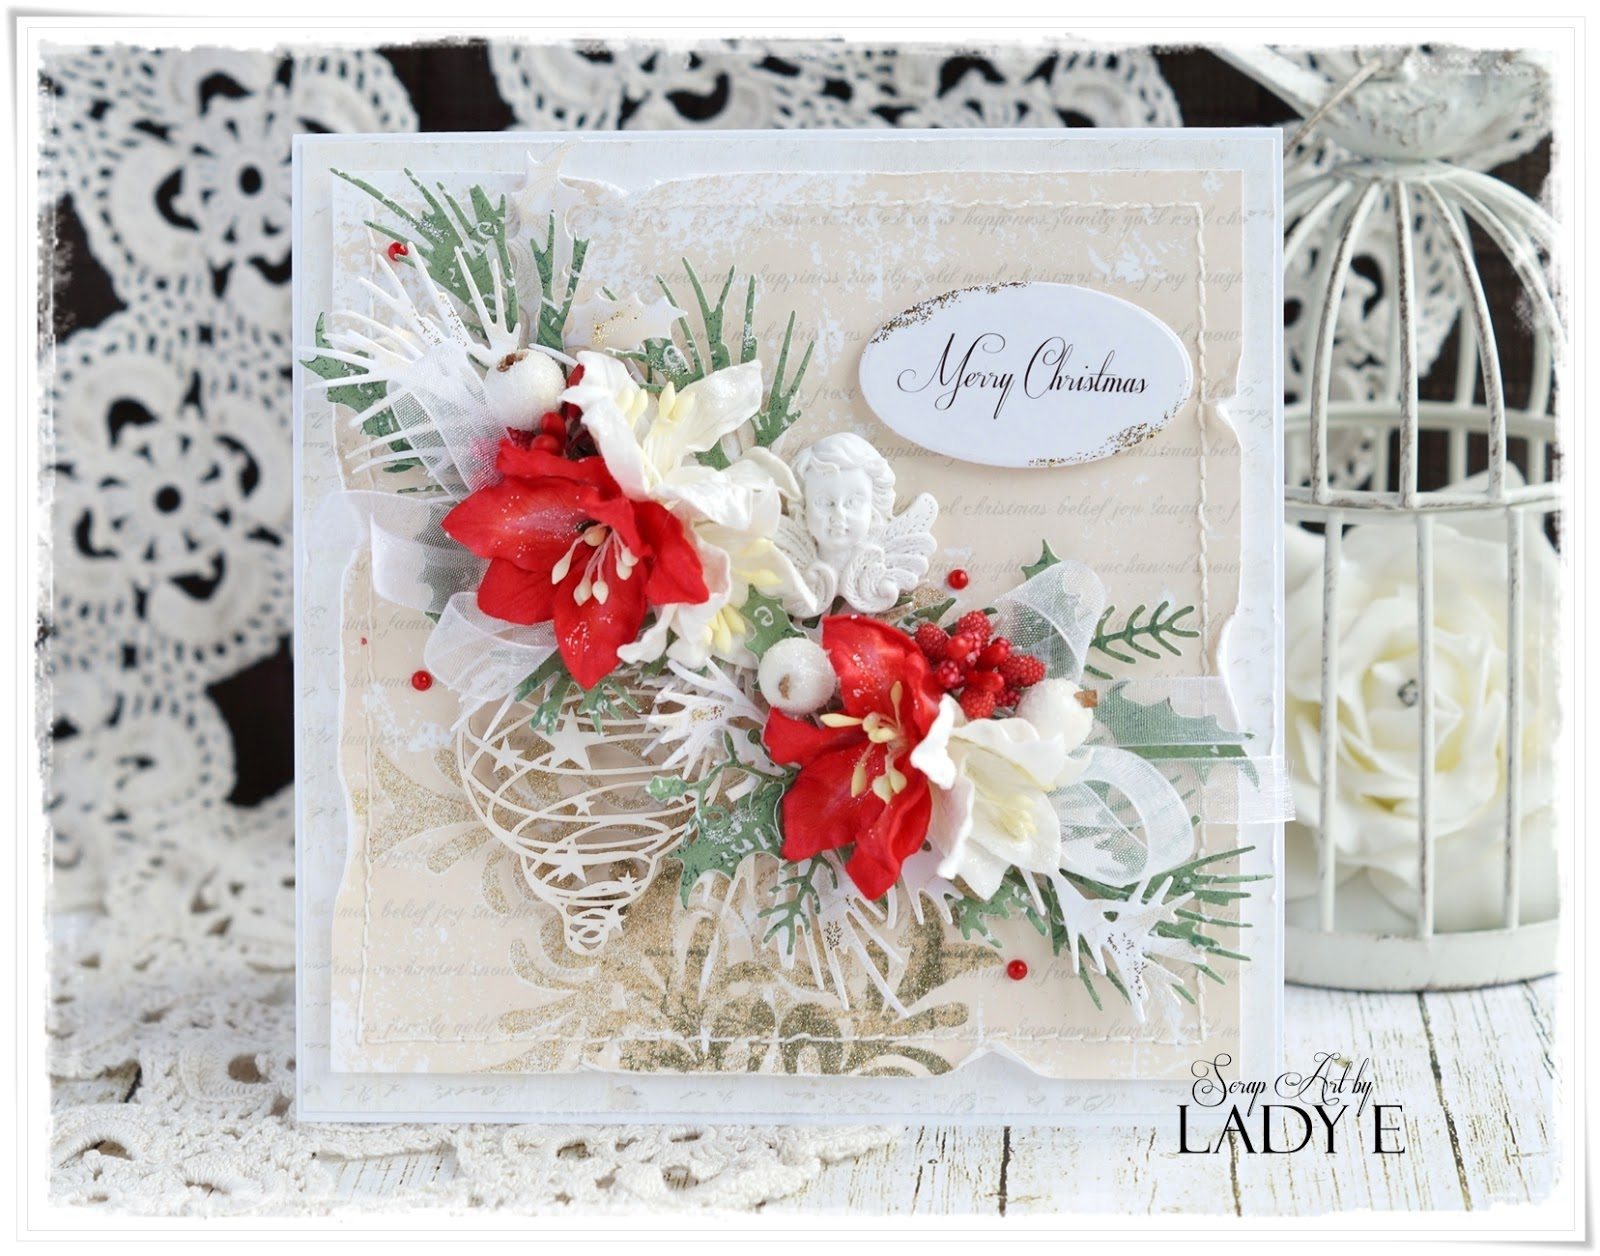 Christmas Cards Wild Orchid Crafts Dt Scrap Art By Lady E